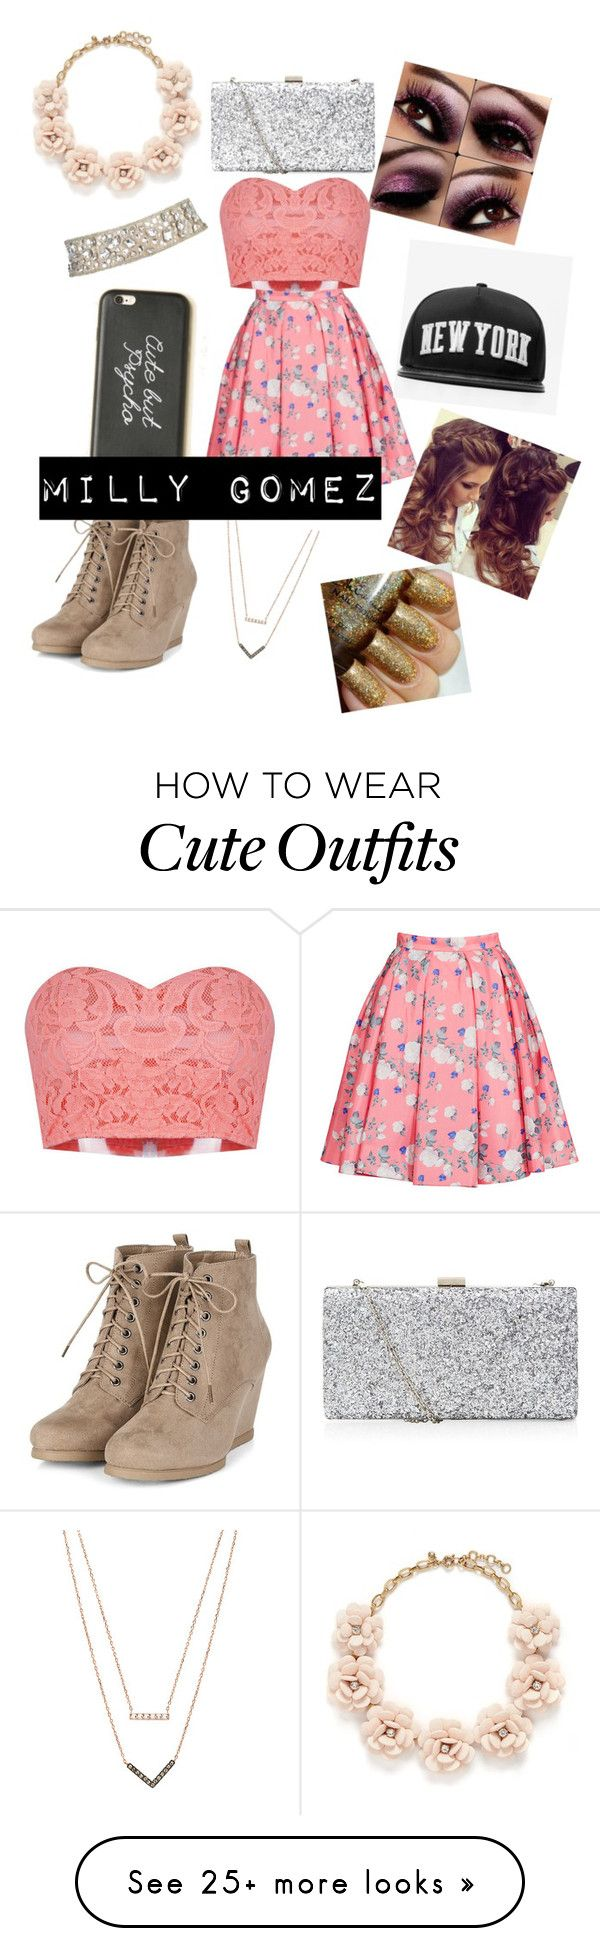 Milly Gomez outfit for my story by mrssimpsonstyleshemmings on Polyvore featuring J.Crew, ERIN Erin Fetherston, Stampd, Michael Kors, womens clothing, womens fashion, women, female, woman and misses